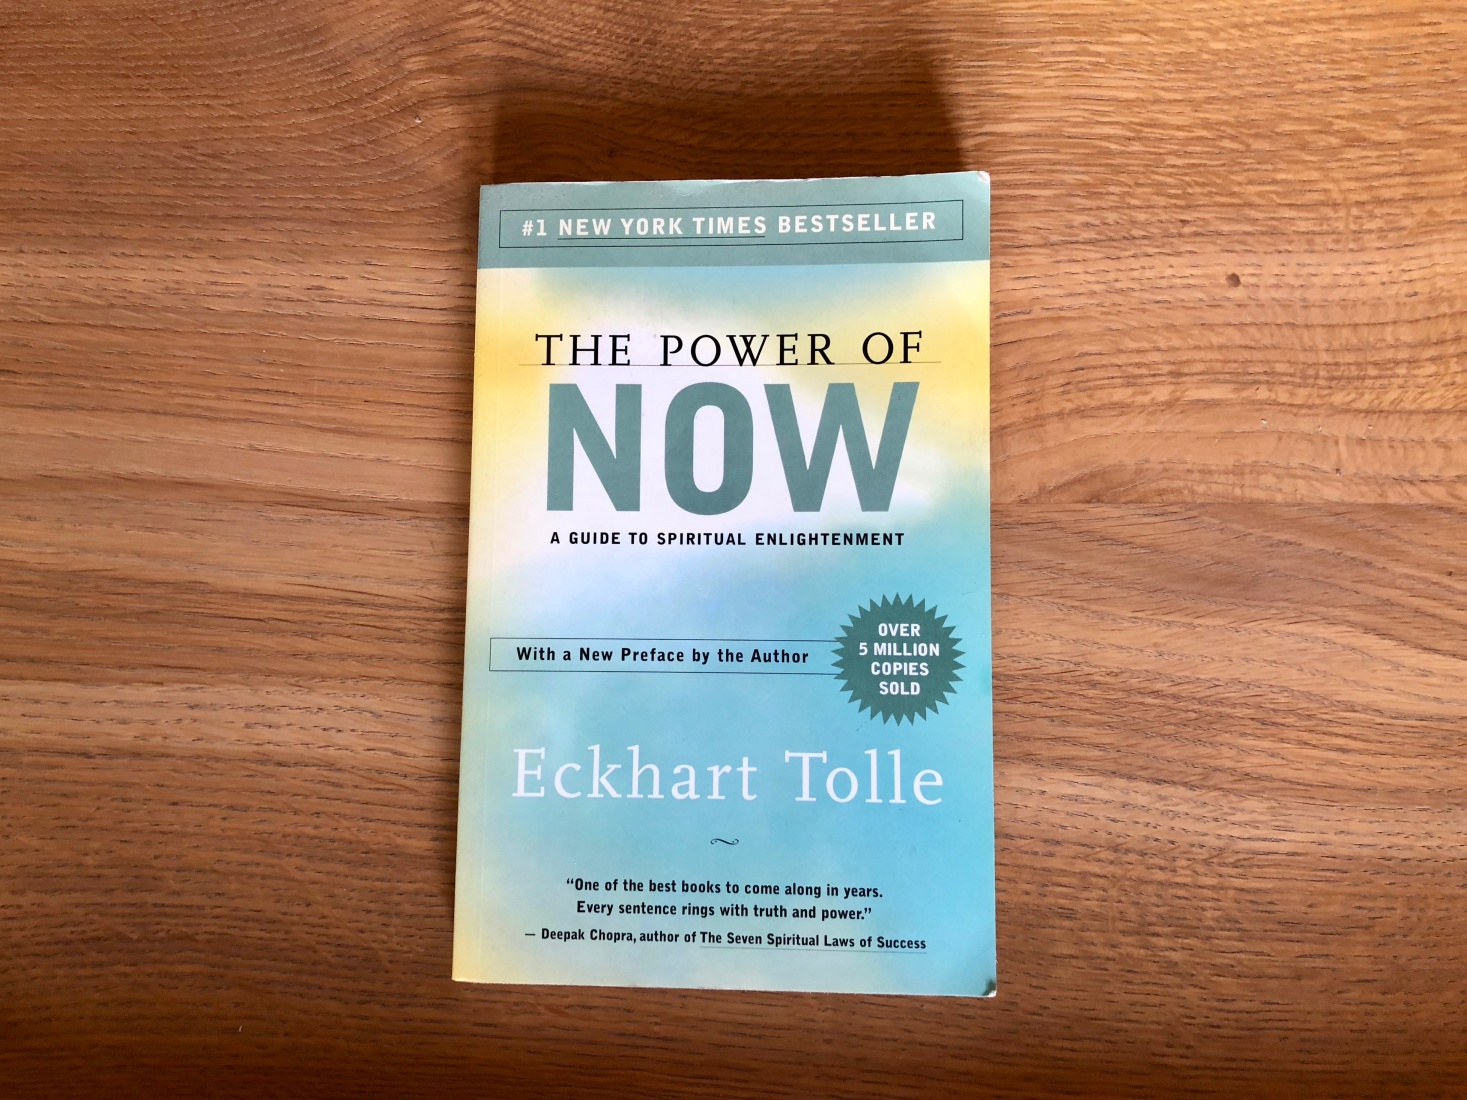 Cover of Eckhart Tolle book The Power of Now, 1997, a popular and influential book about mindfulness that distinguishes between ego and being as a way to understand behavior.